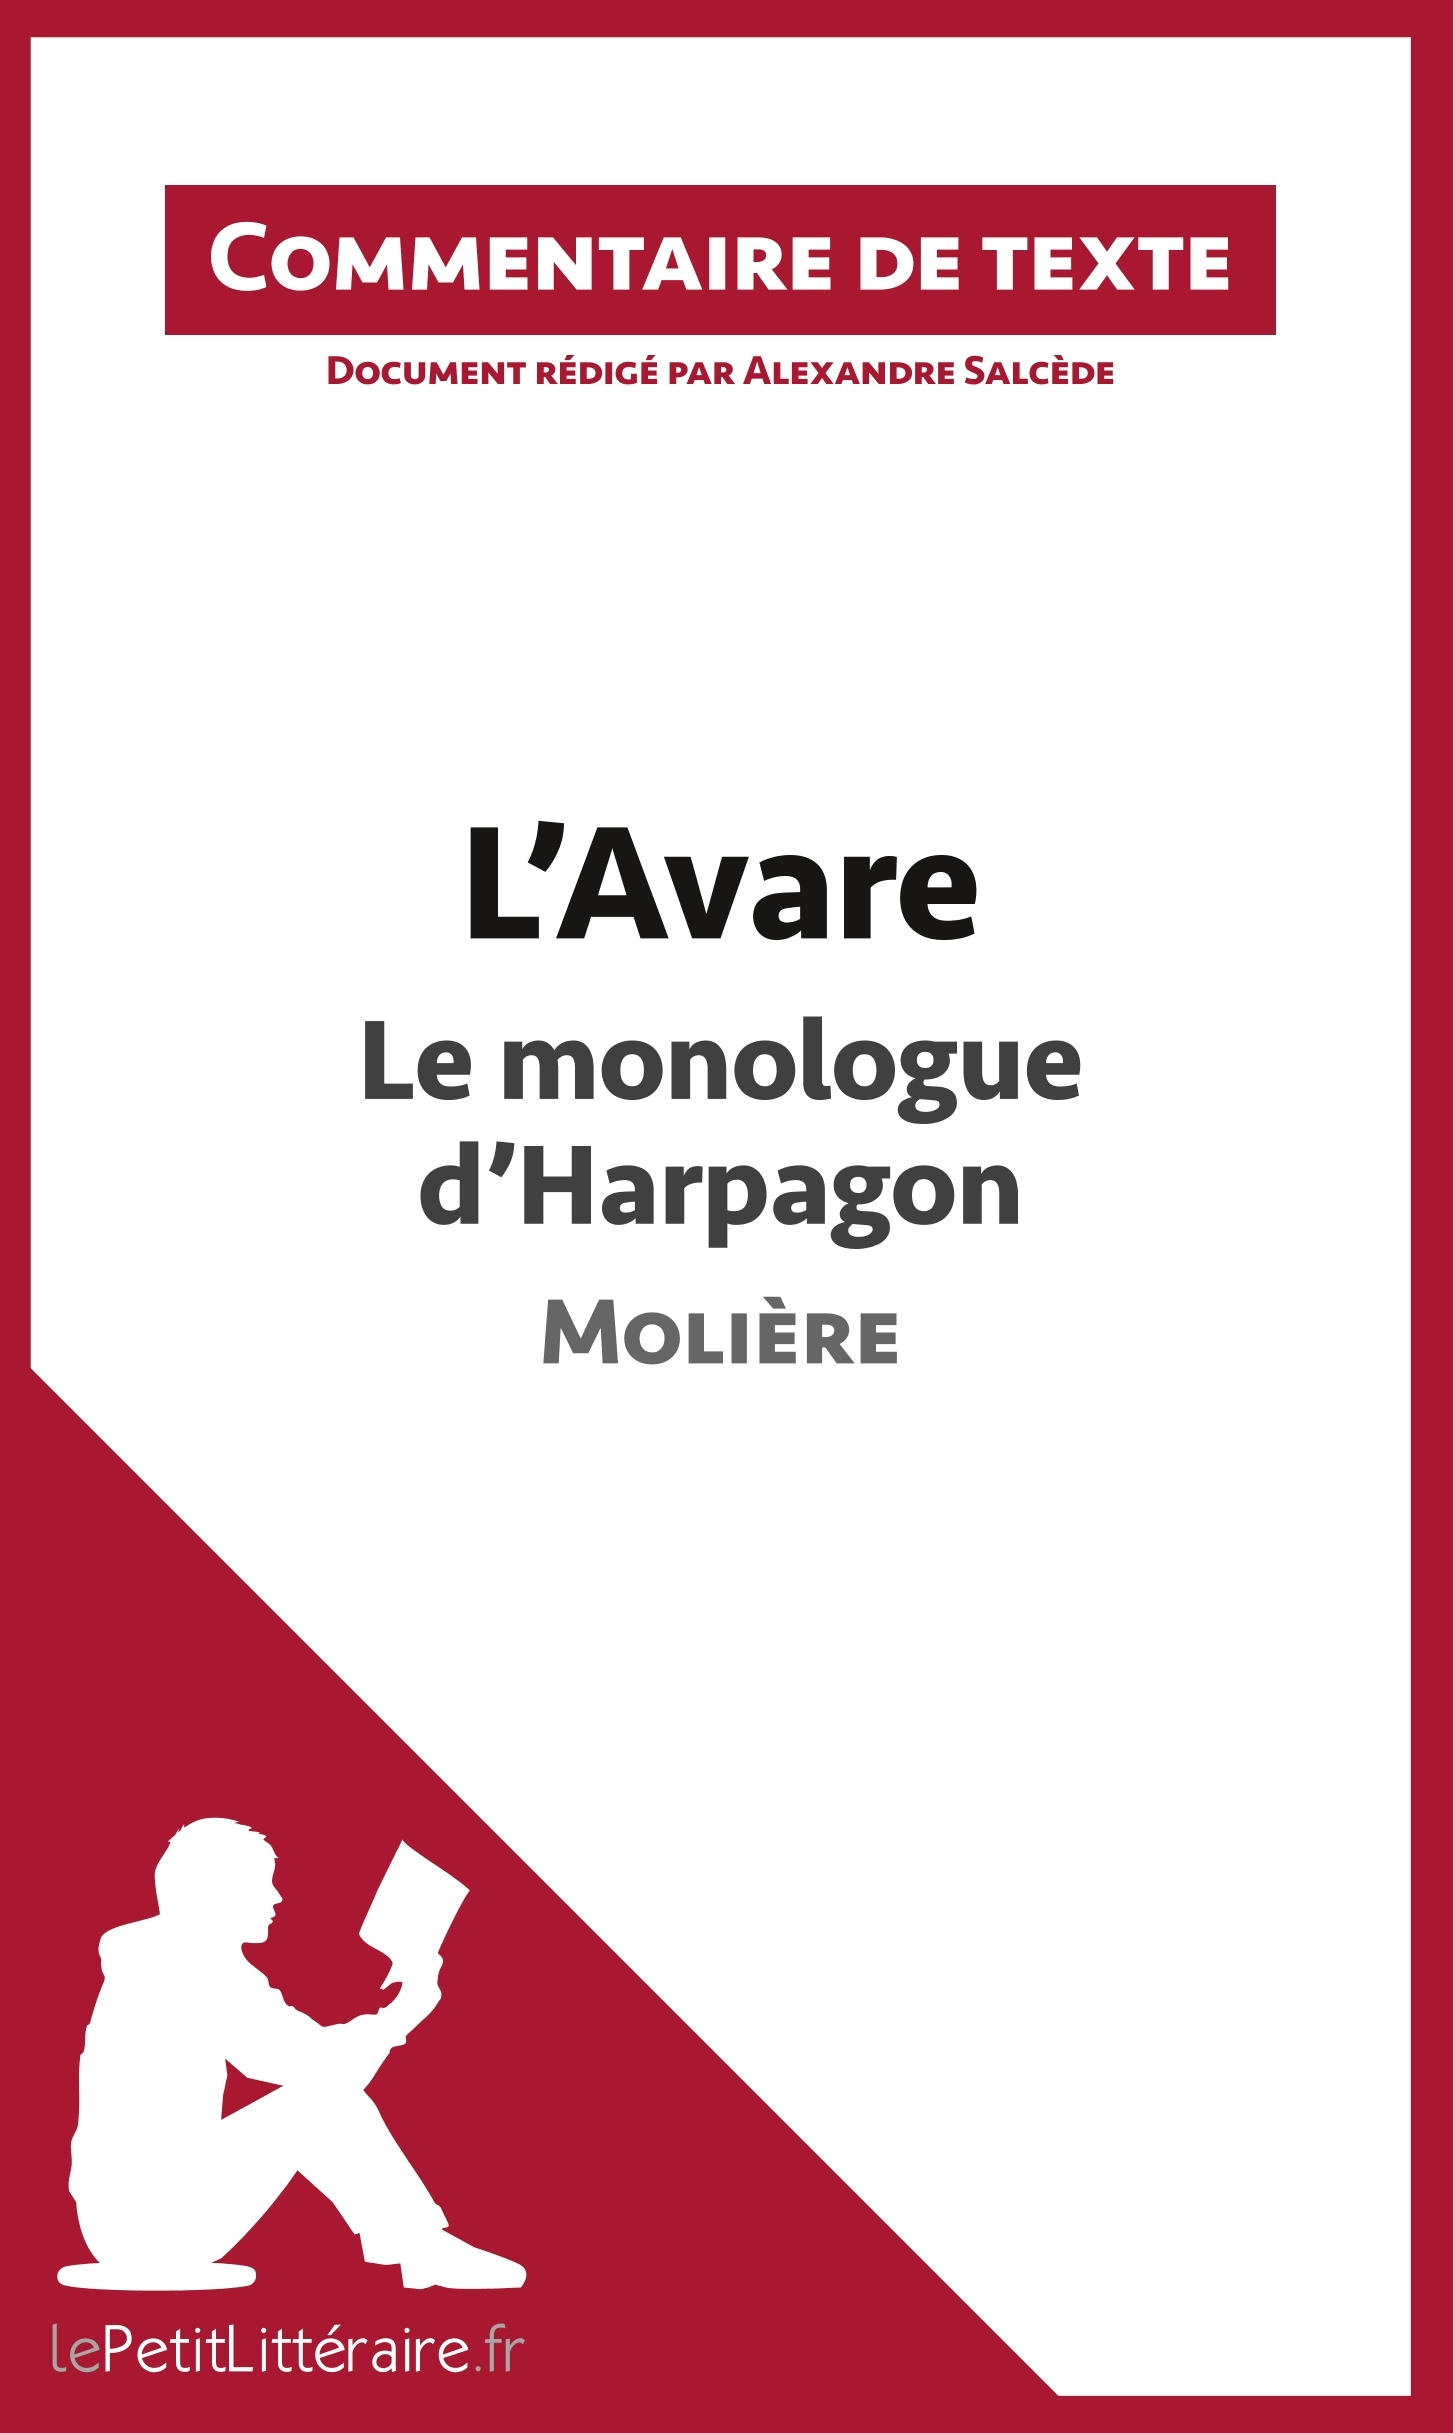 COMMENTAIRE COMPOSE L AVARE DE MOLIERE LE MONOLOGUE D HARPAGON